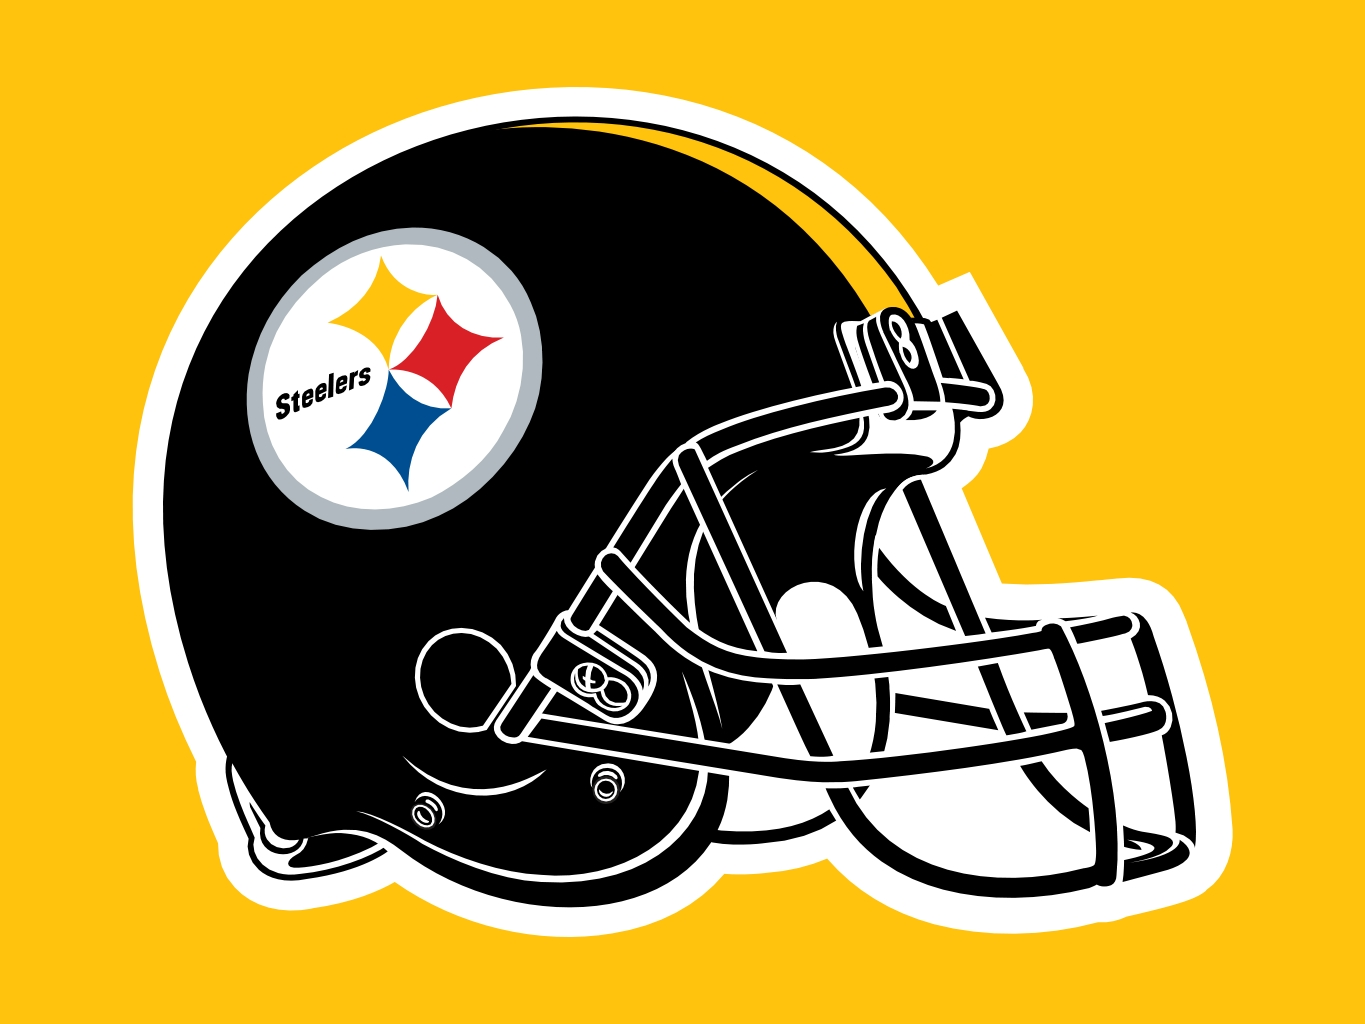 NFL Team Logos   Photo 318 of 416 phombocom 1365x1024